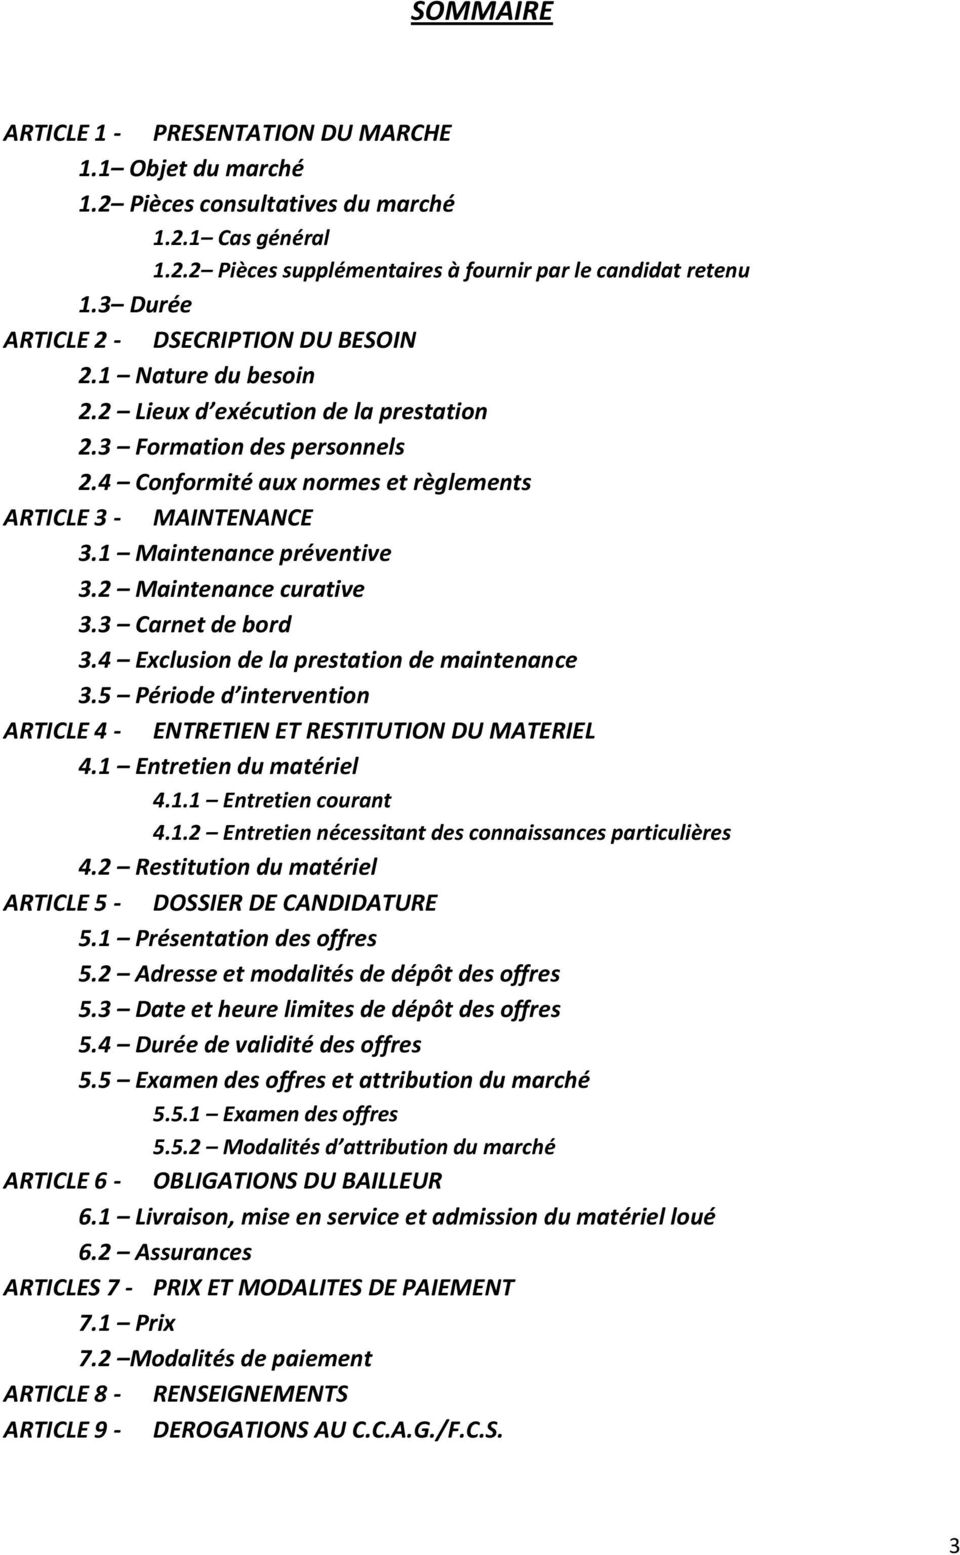 1 Maintenance préventive 3.2 Maintenance curative 3.3 Carnet de bord 3.4 Exclusion de la prestation de maintenance 3.5 Période d intervention ARTICLE 4 - ENTRETIEN ET RESTITUTION DU MATERIEL 4.